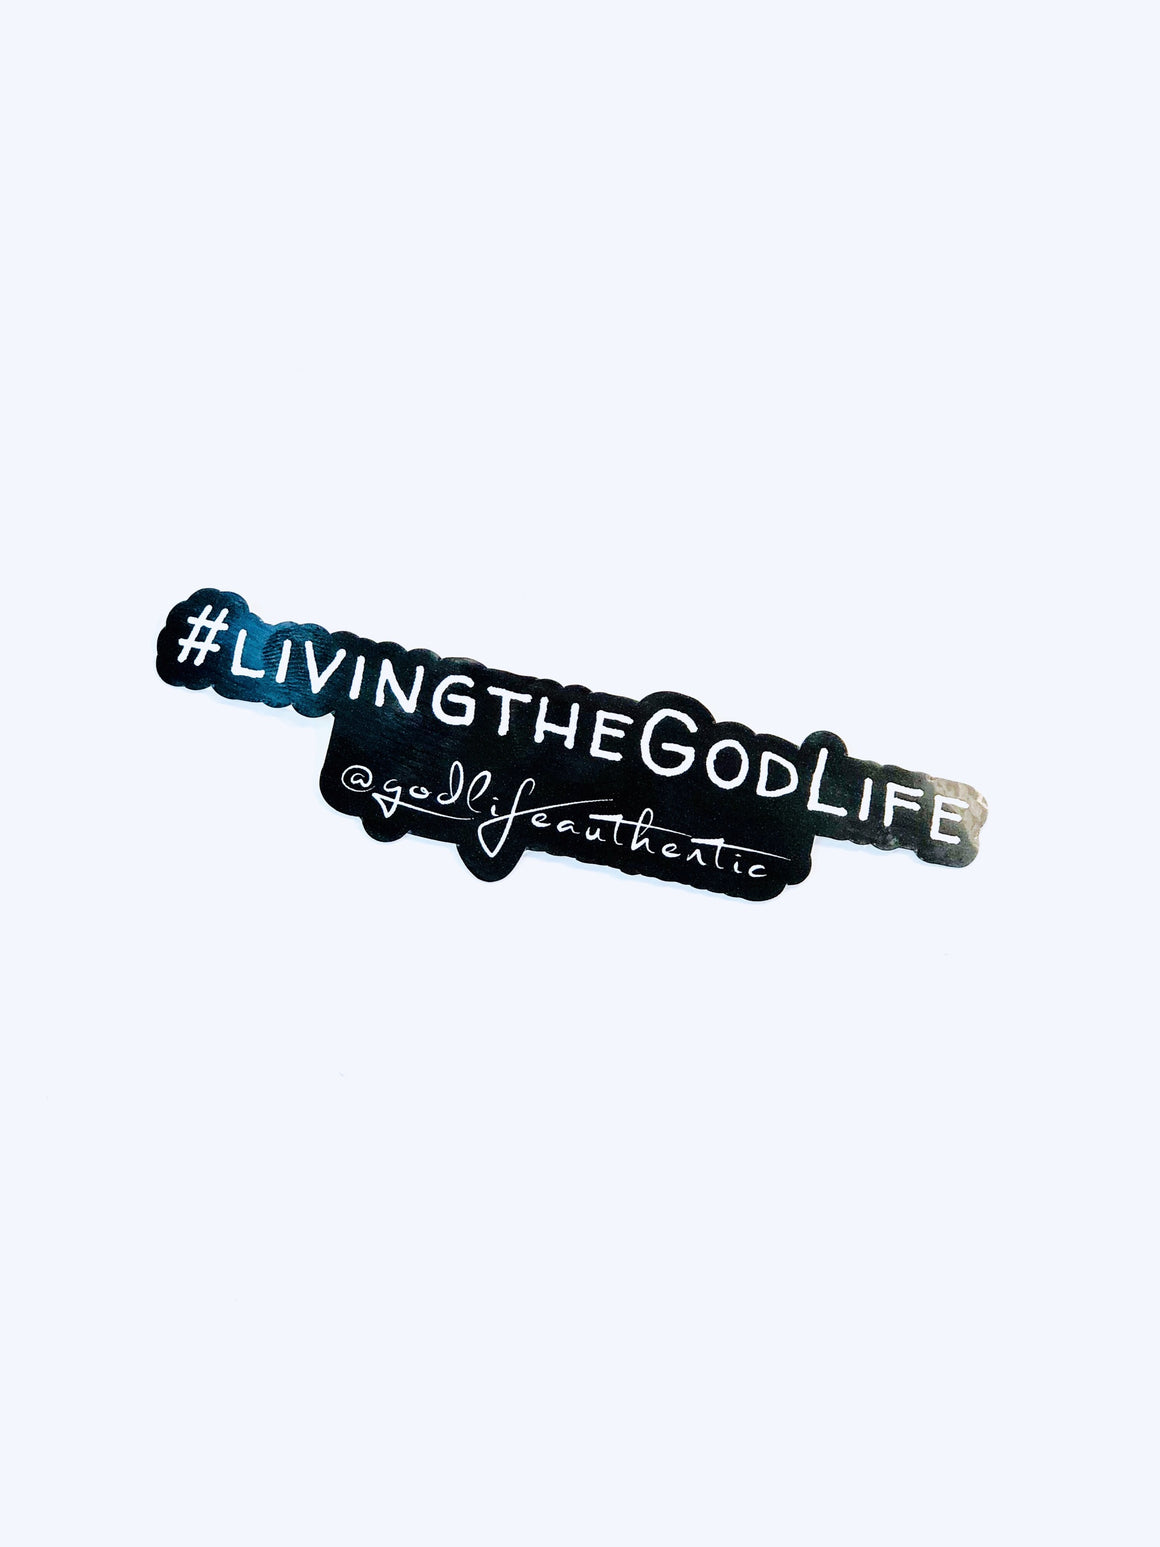 #LivingTheGodLife Decal